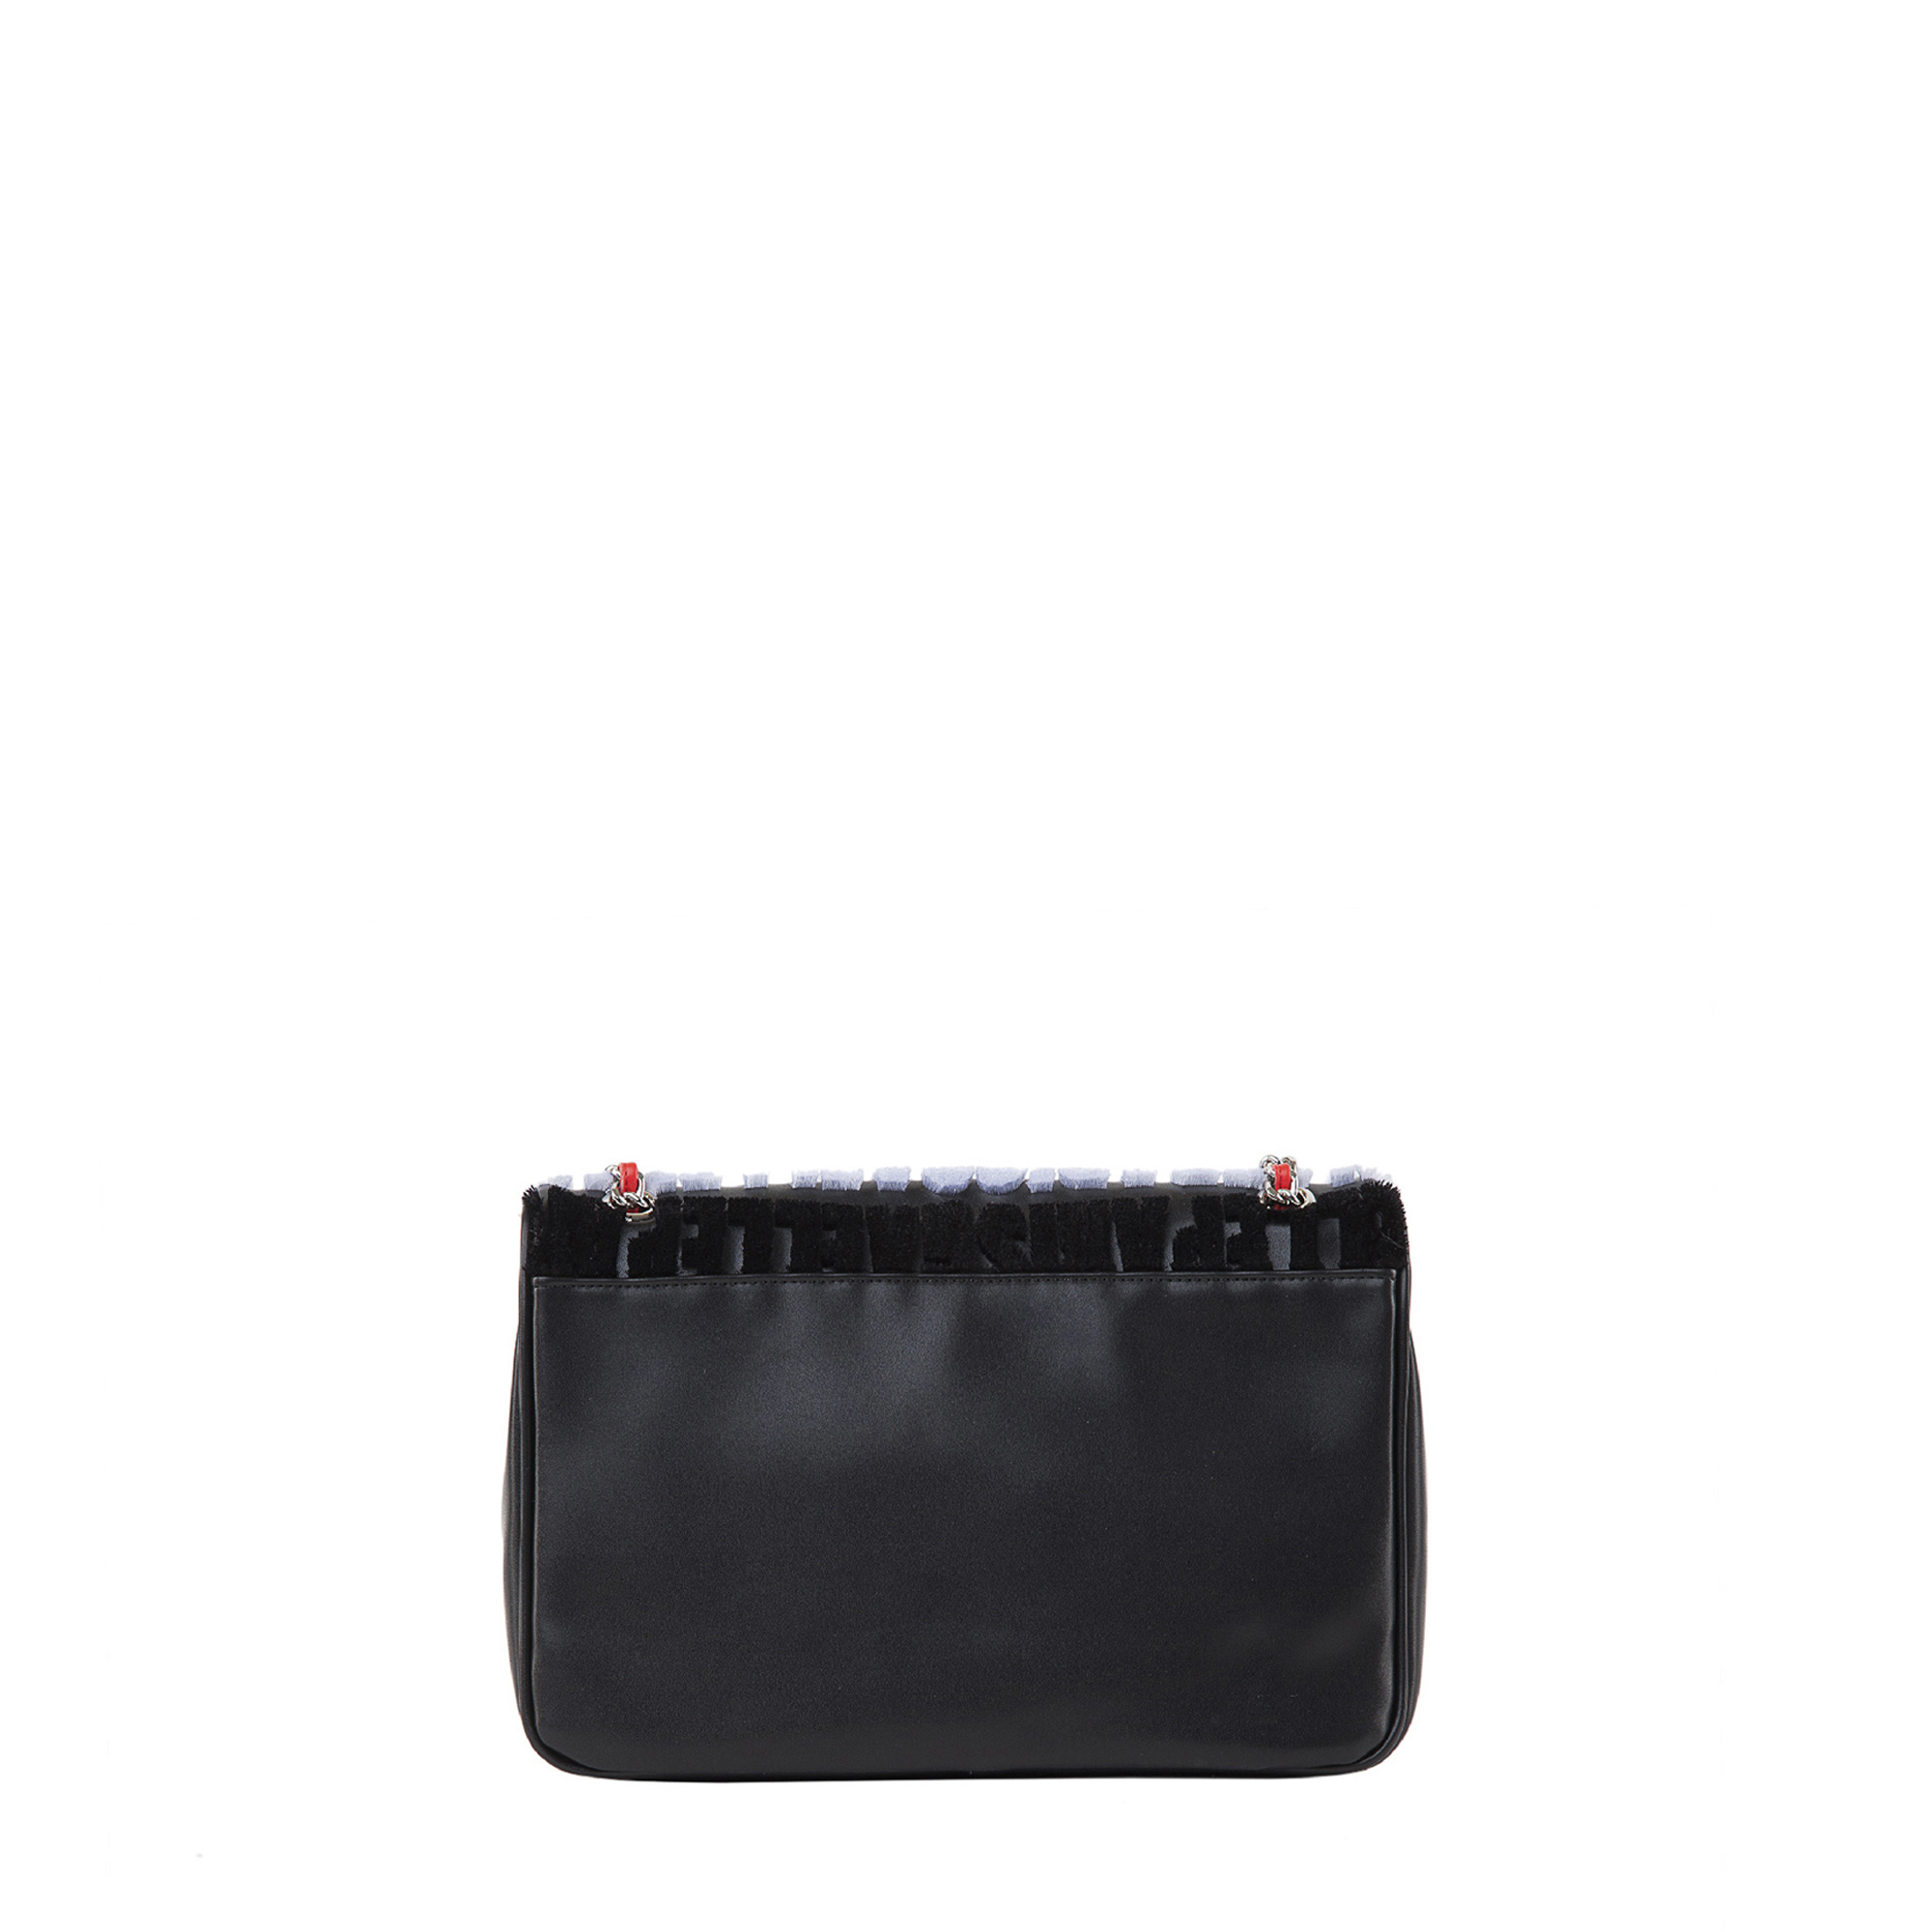 SHOULDER BAG - GBDA1131 - GAELLE PARIS